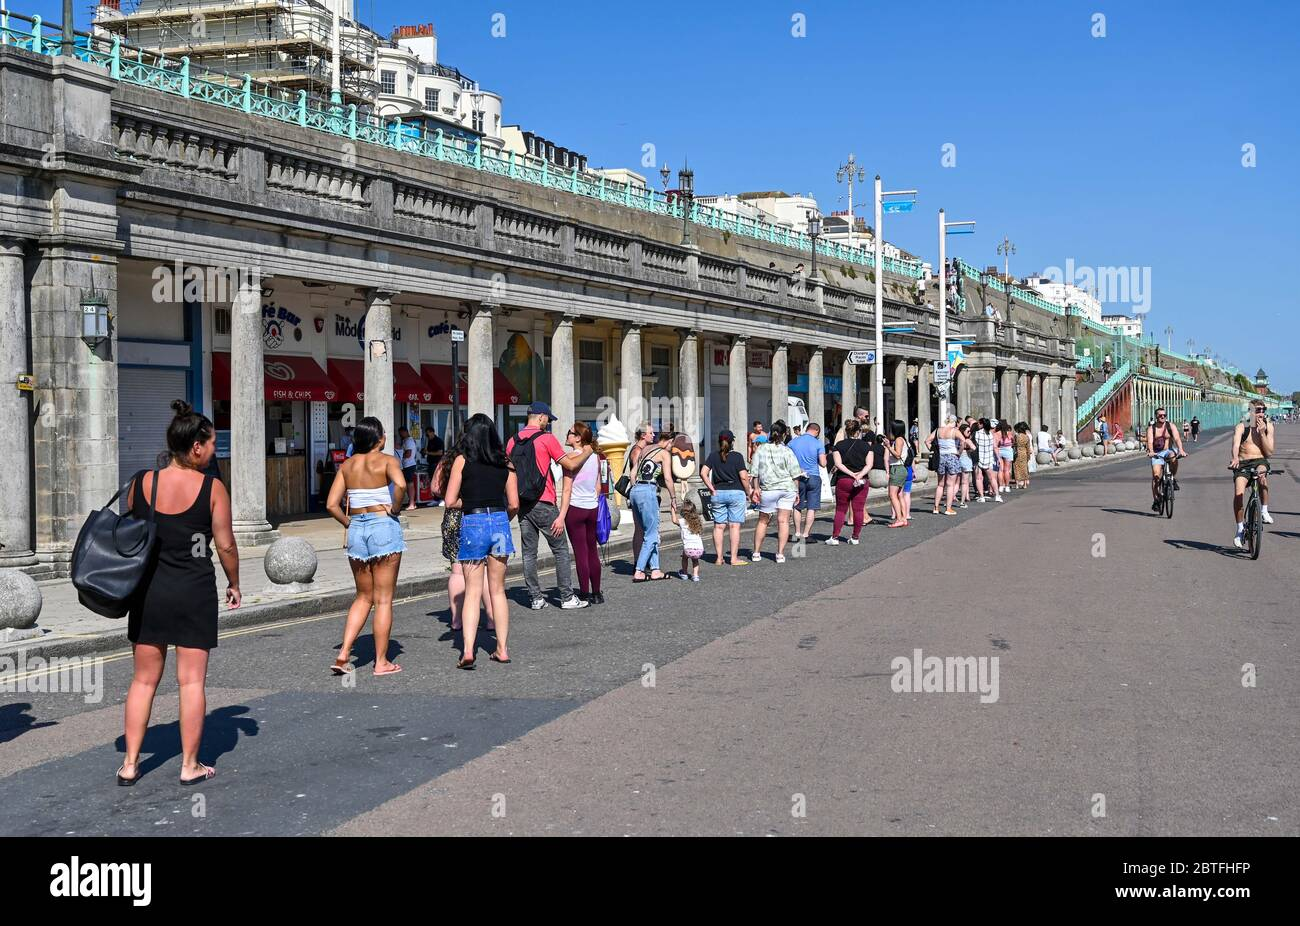 Brighton UK 25th May 2020 - Visitors queue for a public toilet in the late afternoon sunshine on Brighton beach and seafront as the bank holiday weekend draws to an end today on the south coast during the Coronavirus COVID-19 pandemic crisis  . Credit: Simon Dack / Alamy Live News Stock Photo